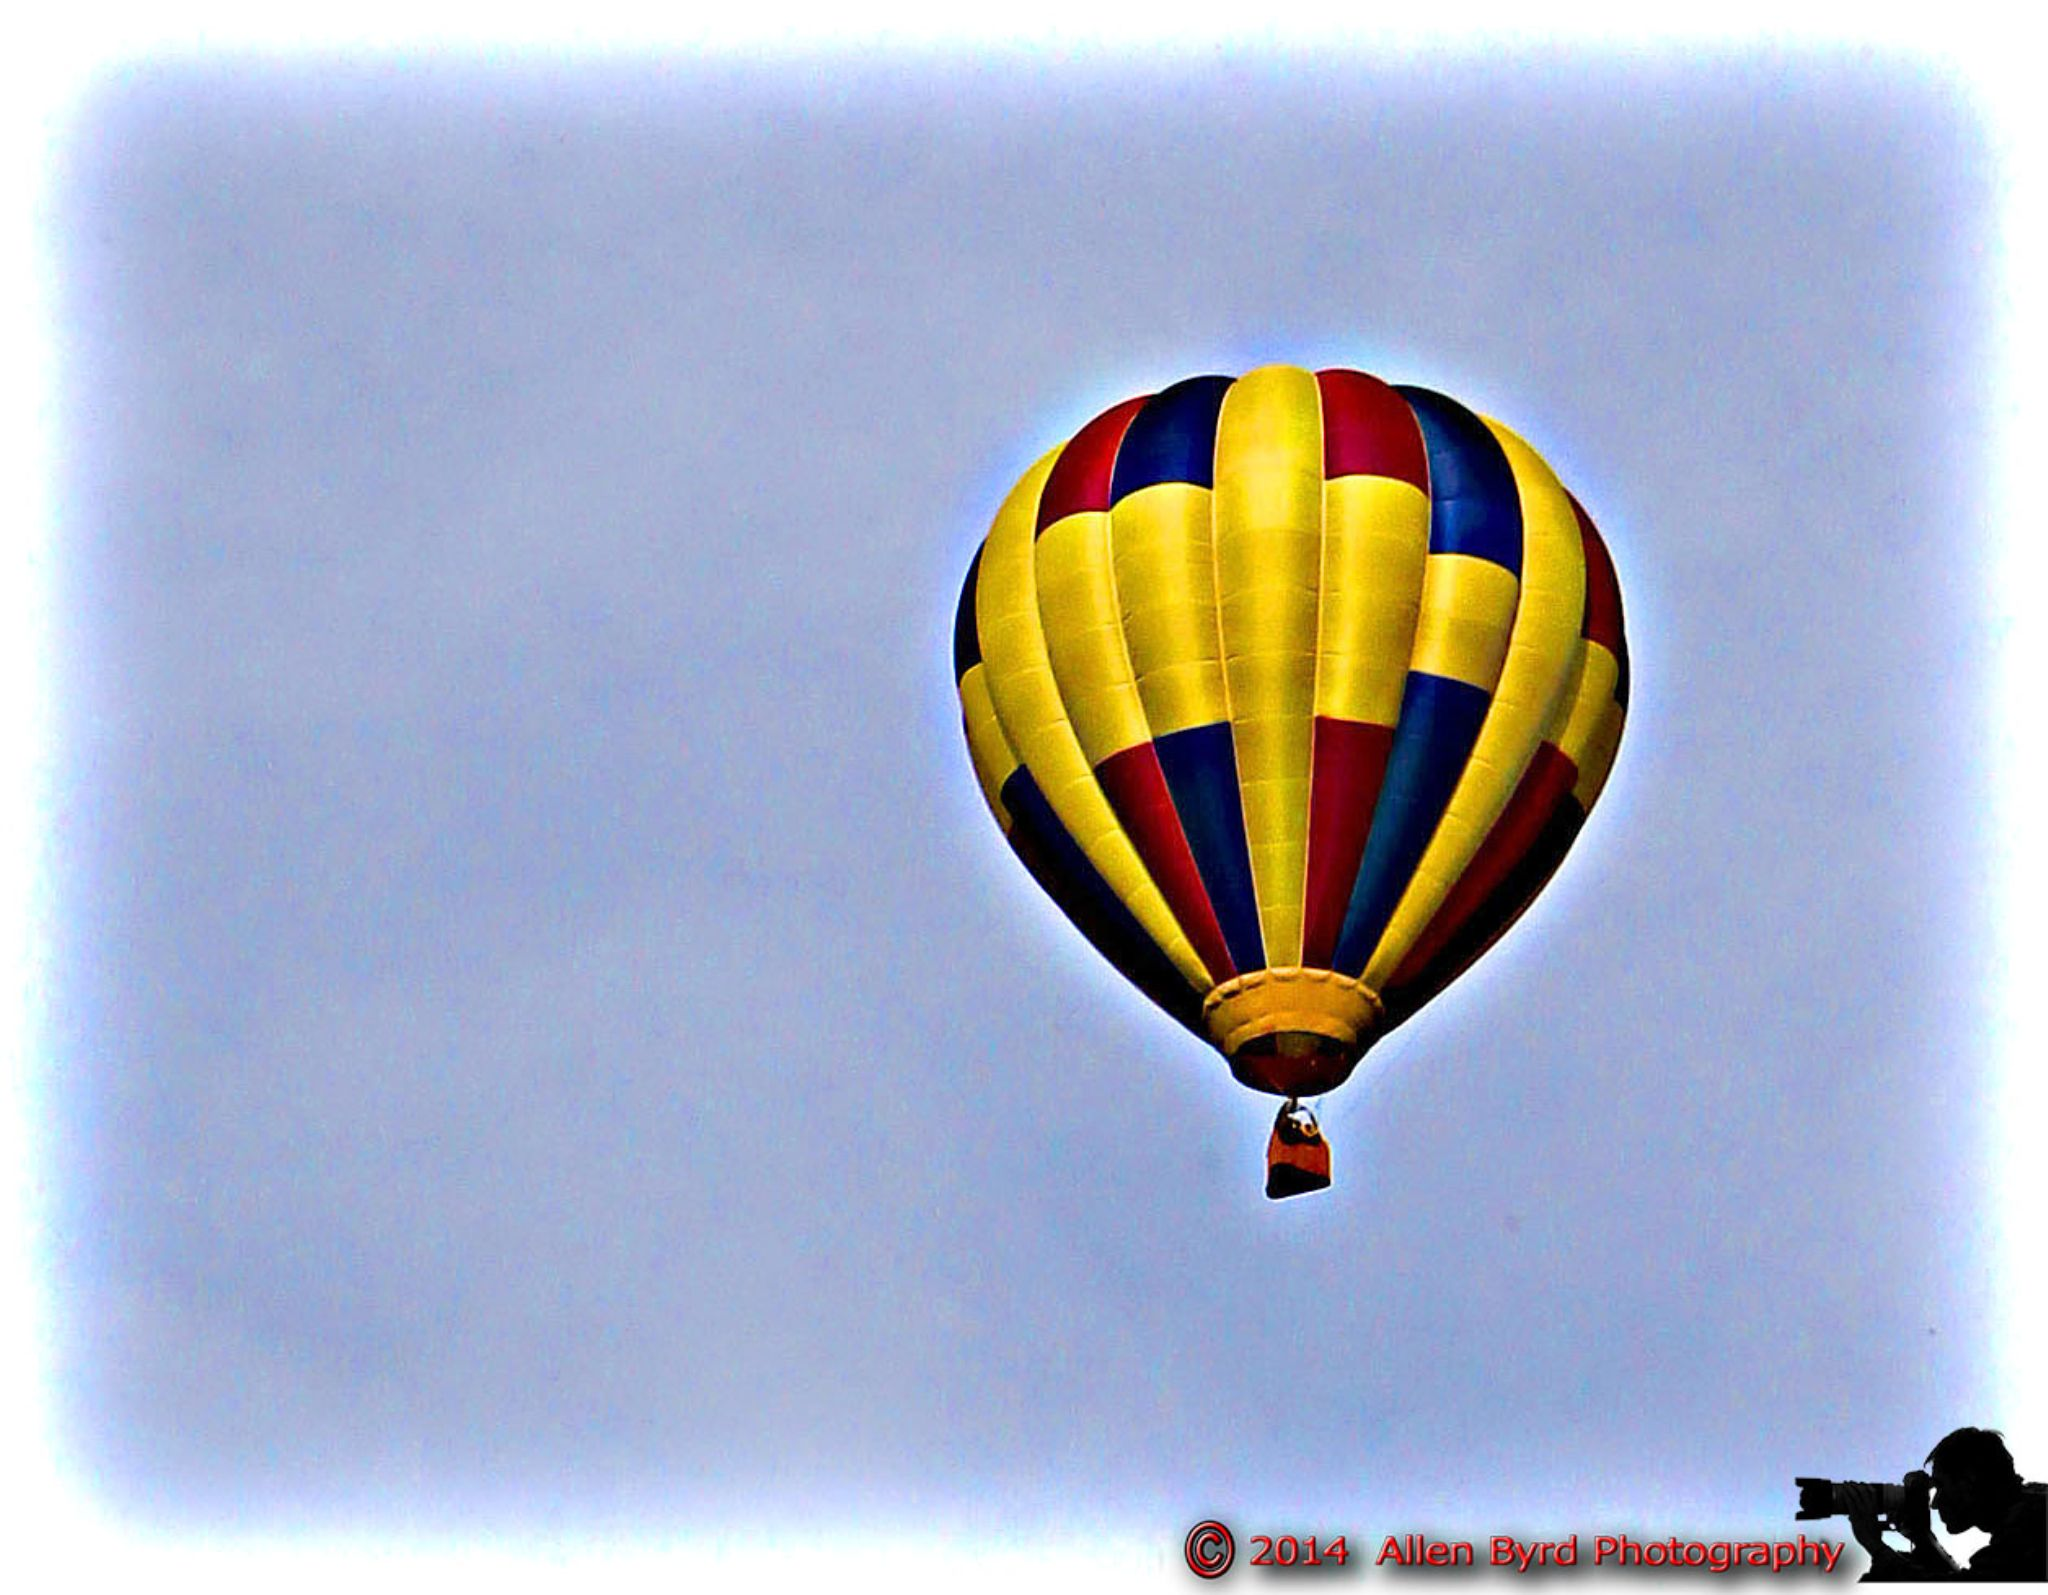 Baloon-1 by Allen Byrd Photography